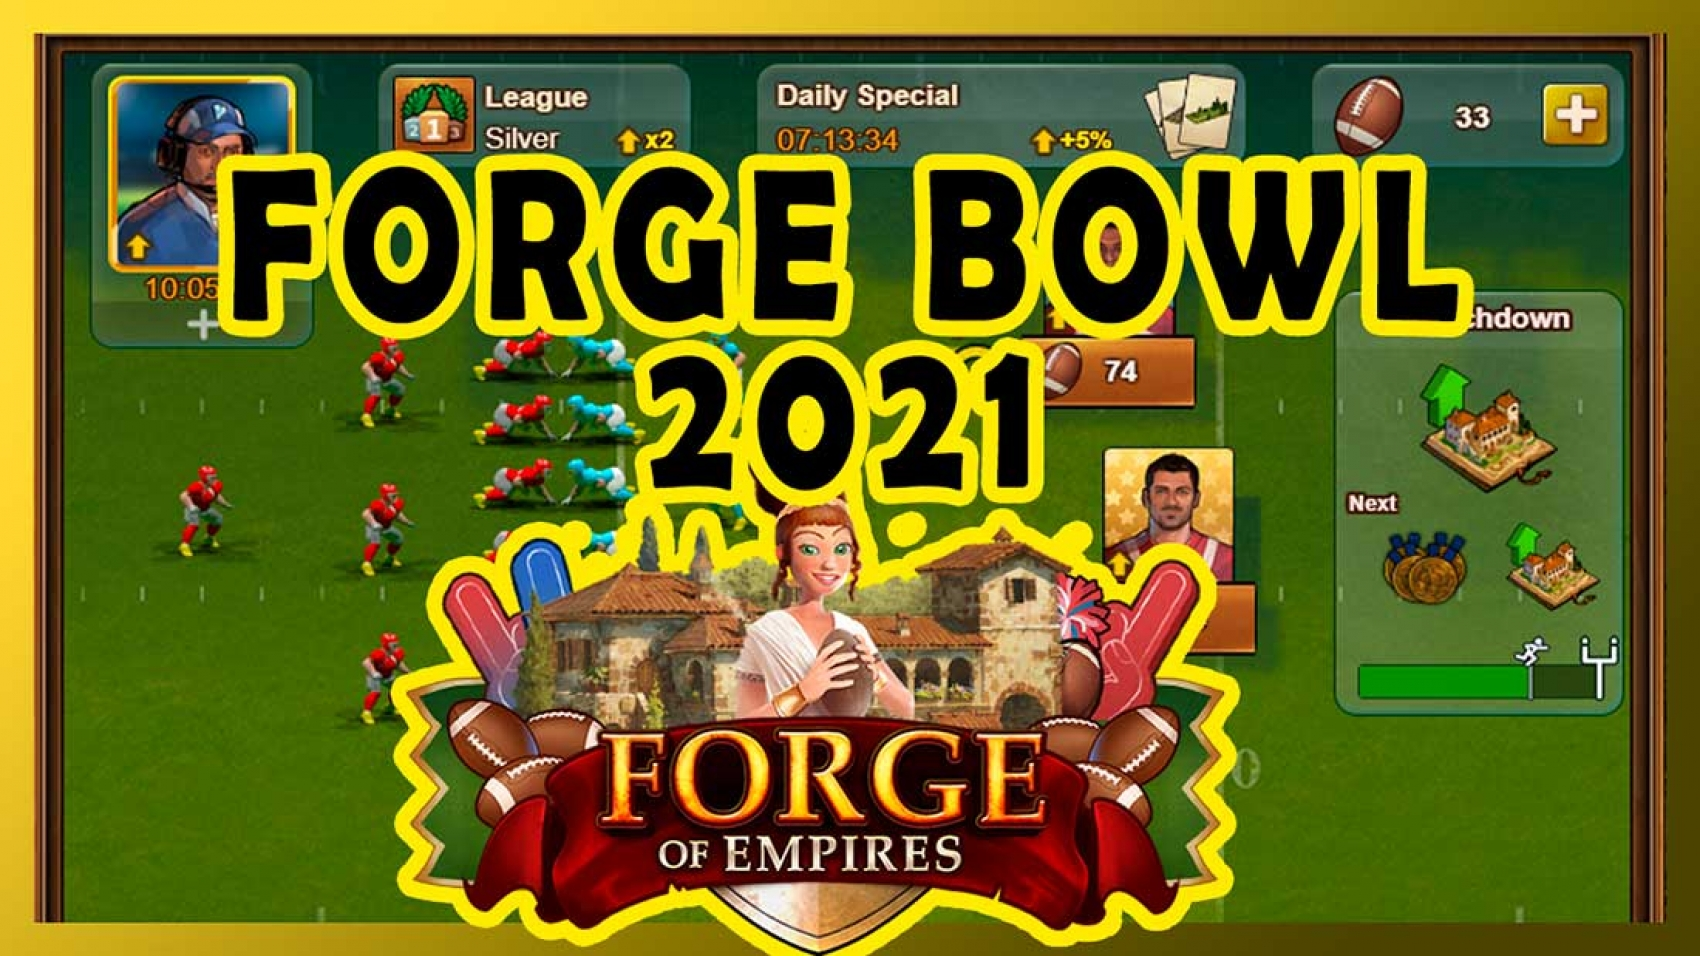 2021 Forge Bowl Event